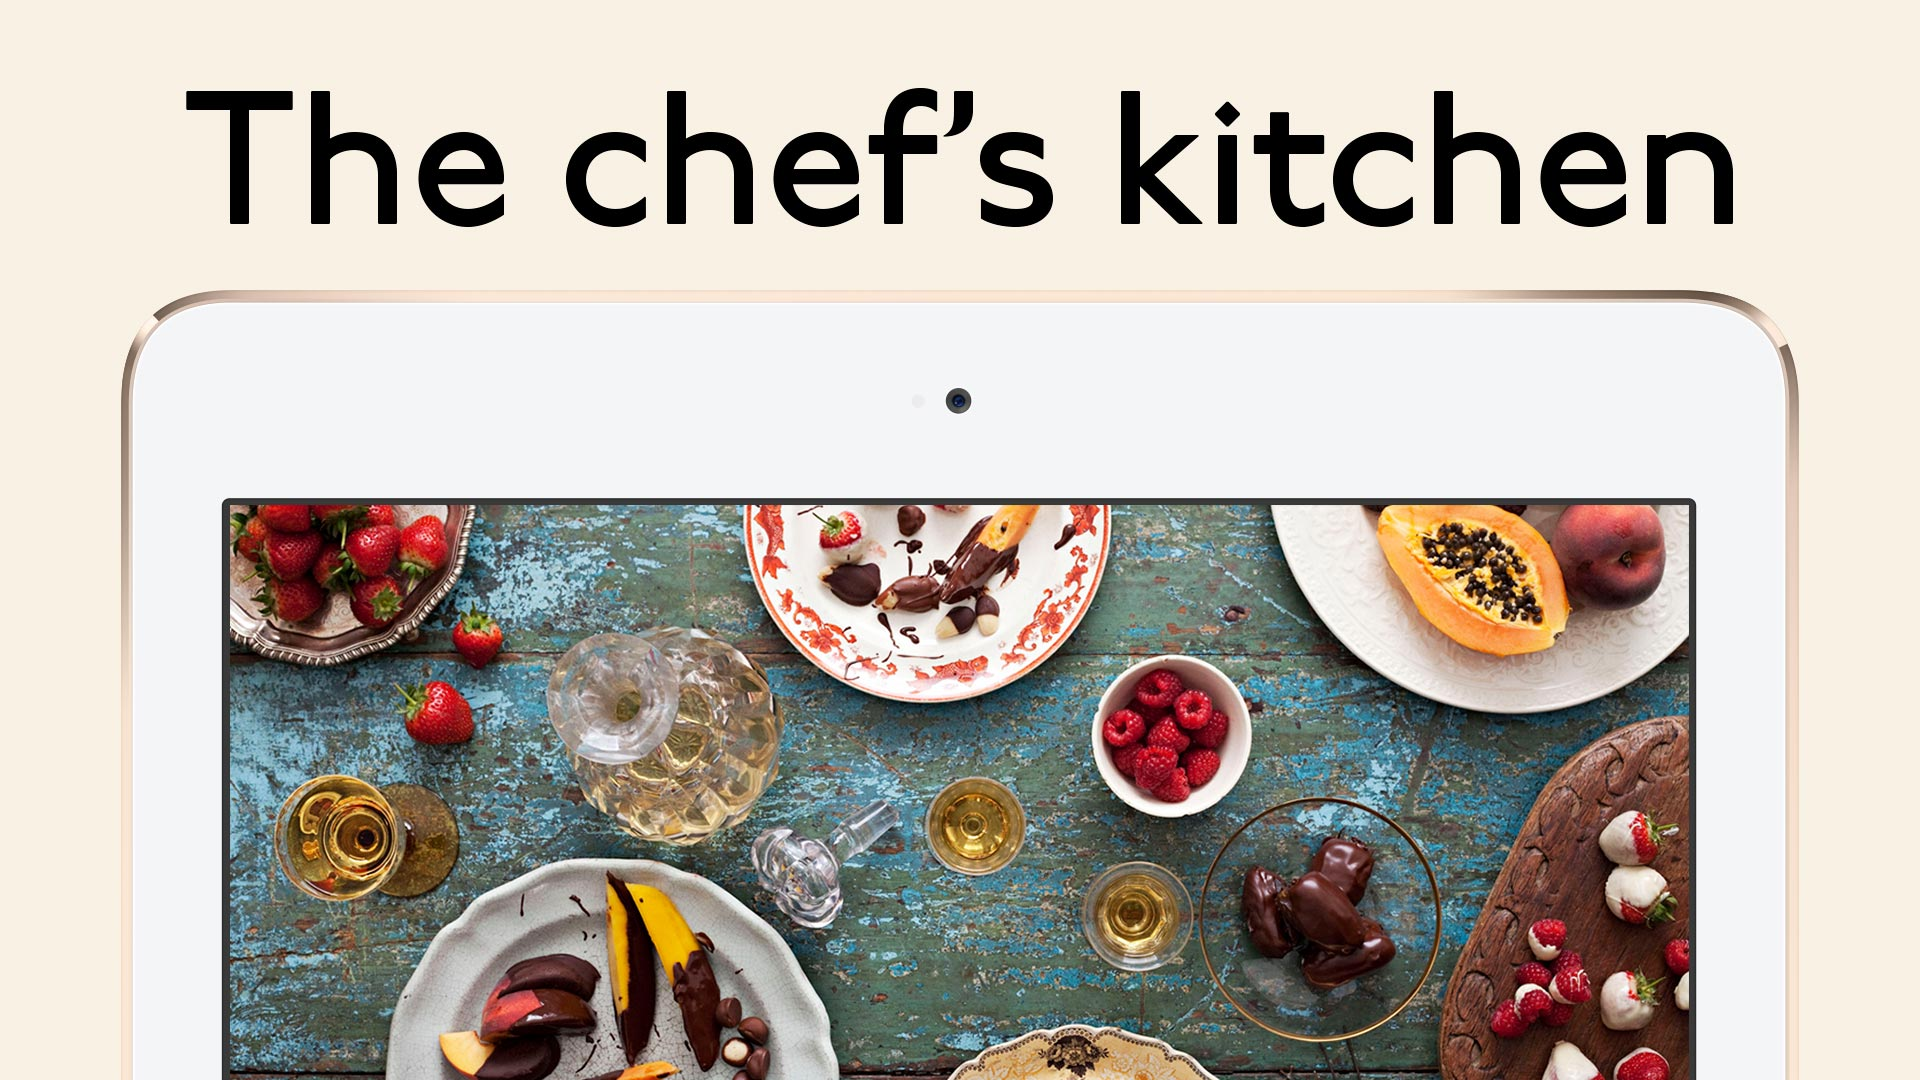 Cookbooth: the chef's kitchen